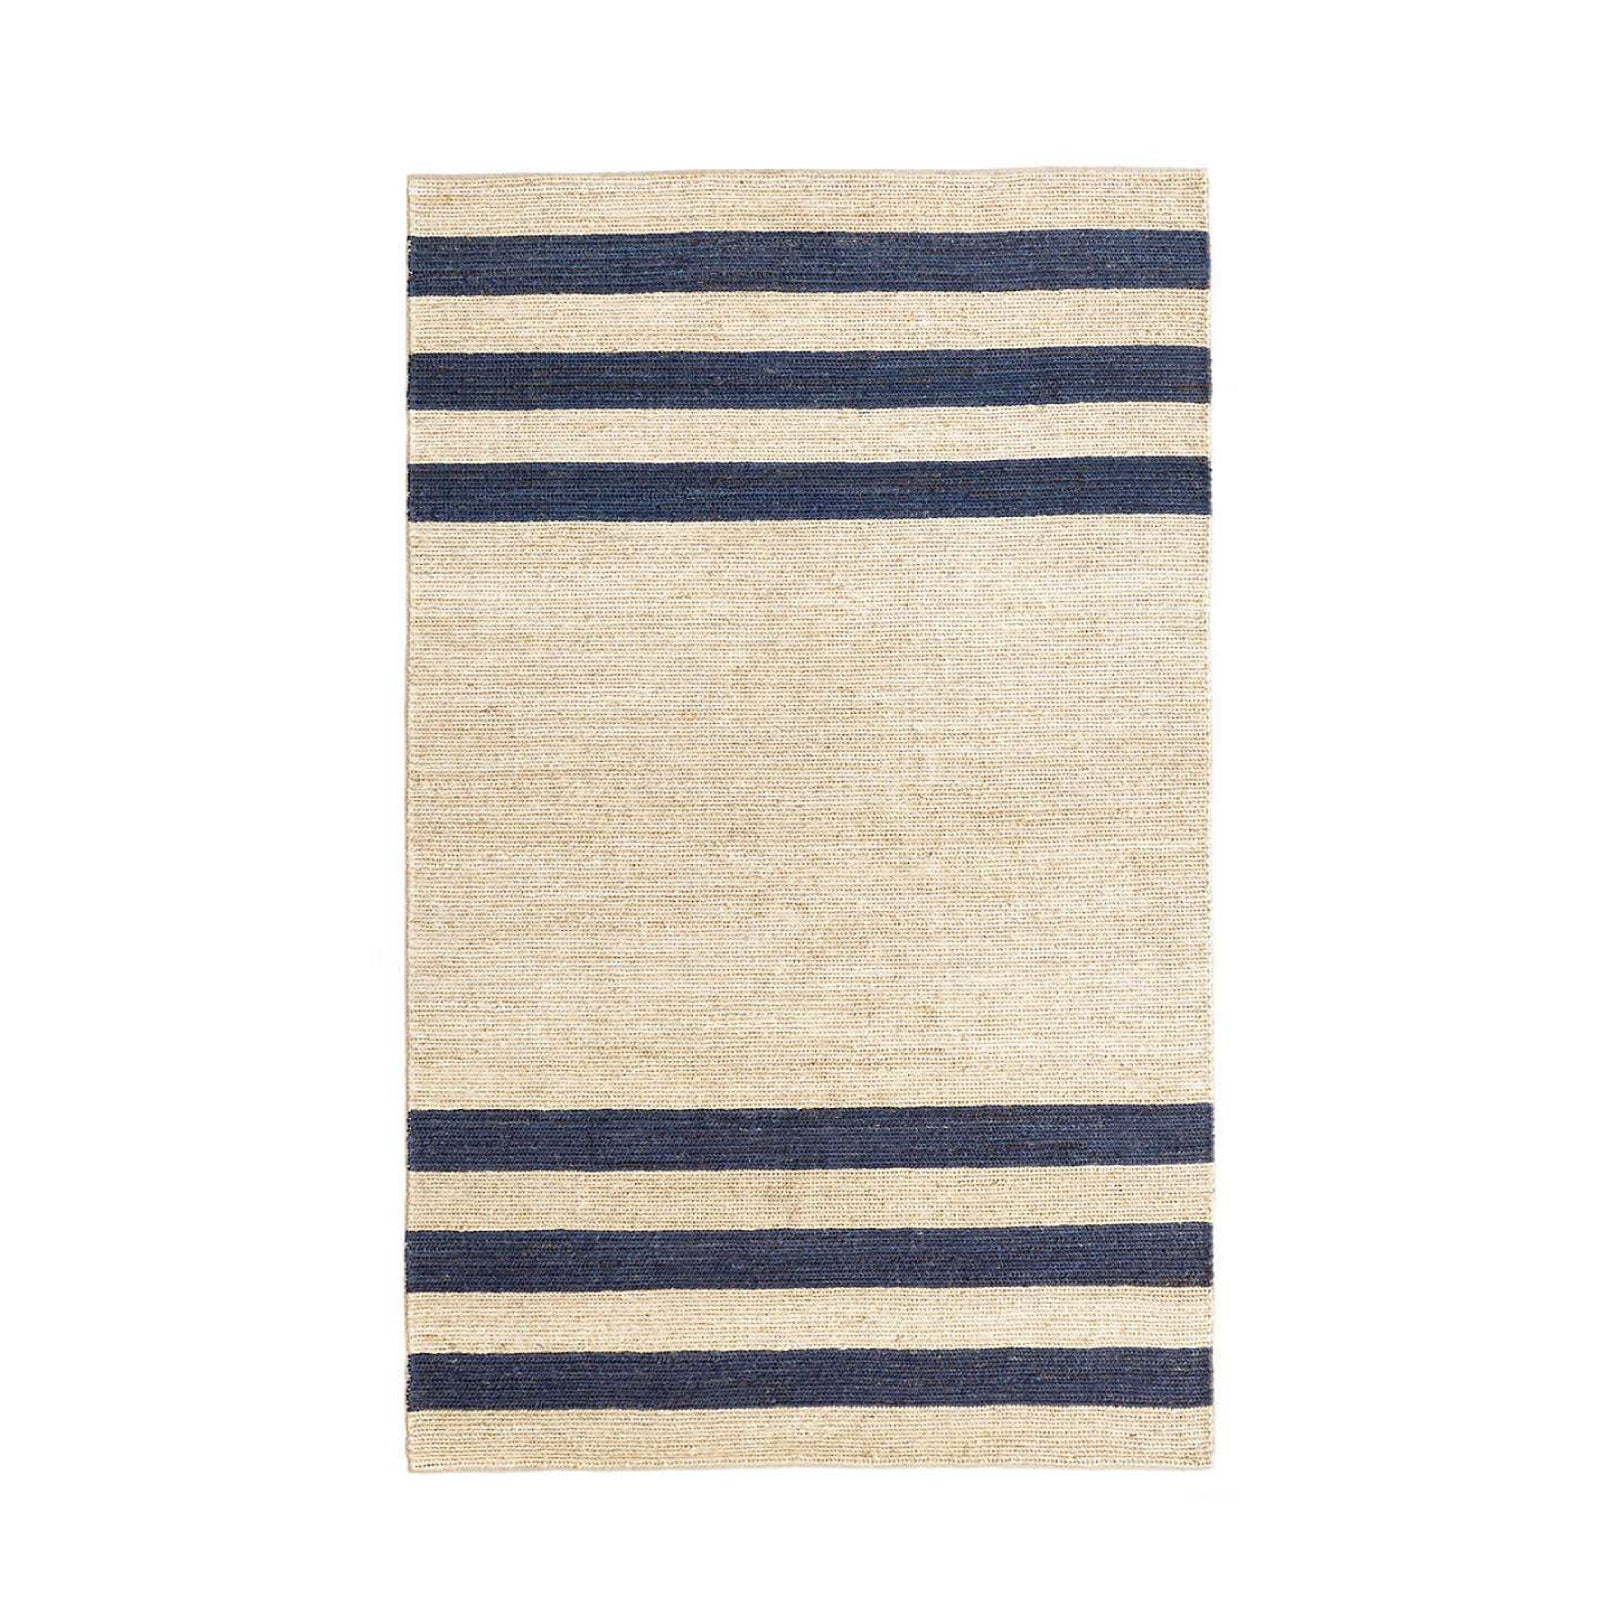 Williams Woven Jute Rug in Blue